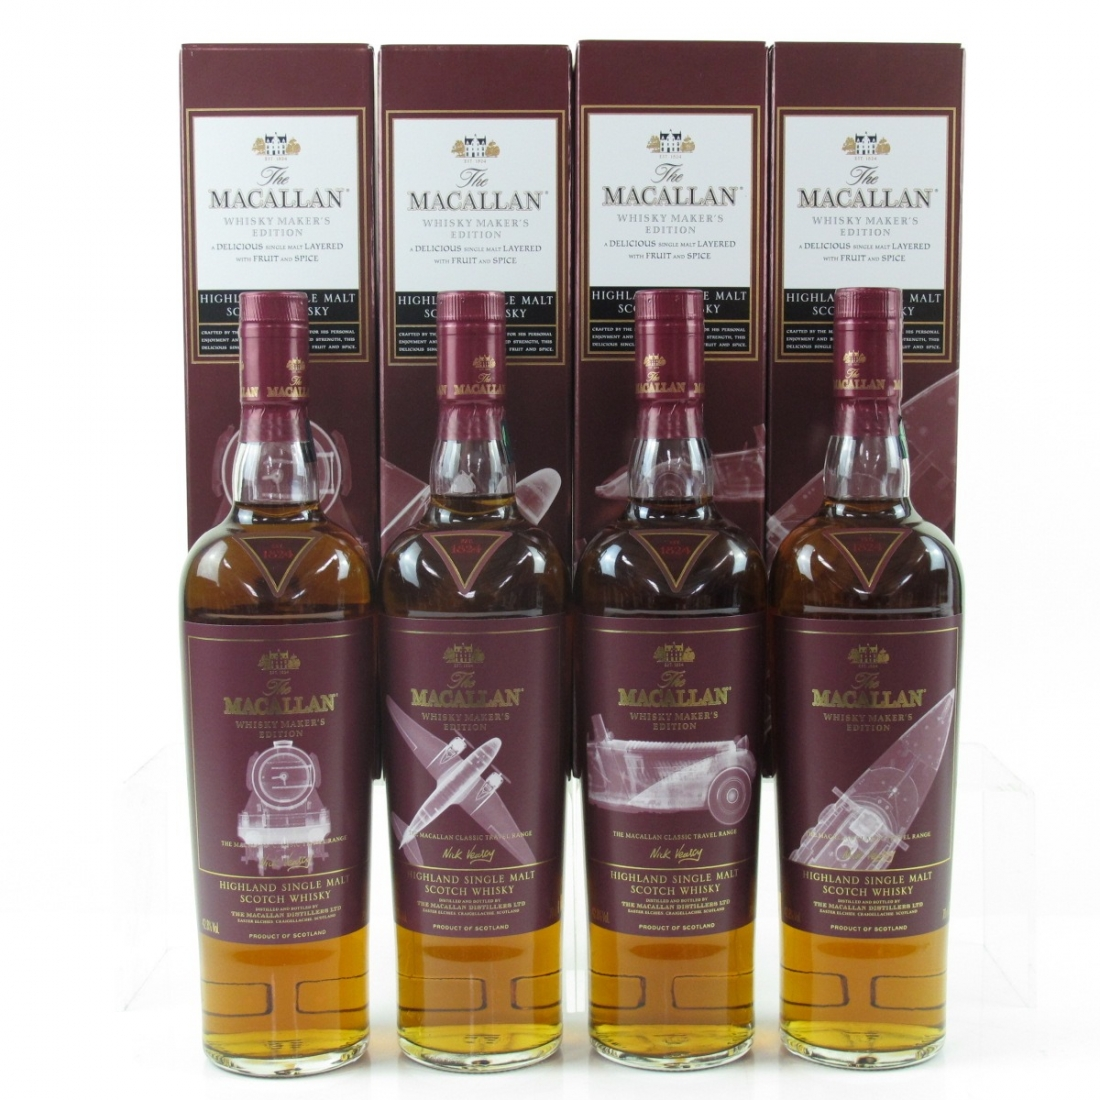 Macallan Whisky Makers Edition Classic Travel Range Nick Veasey Limited Edition 4 x 70cl